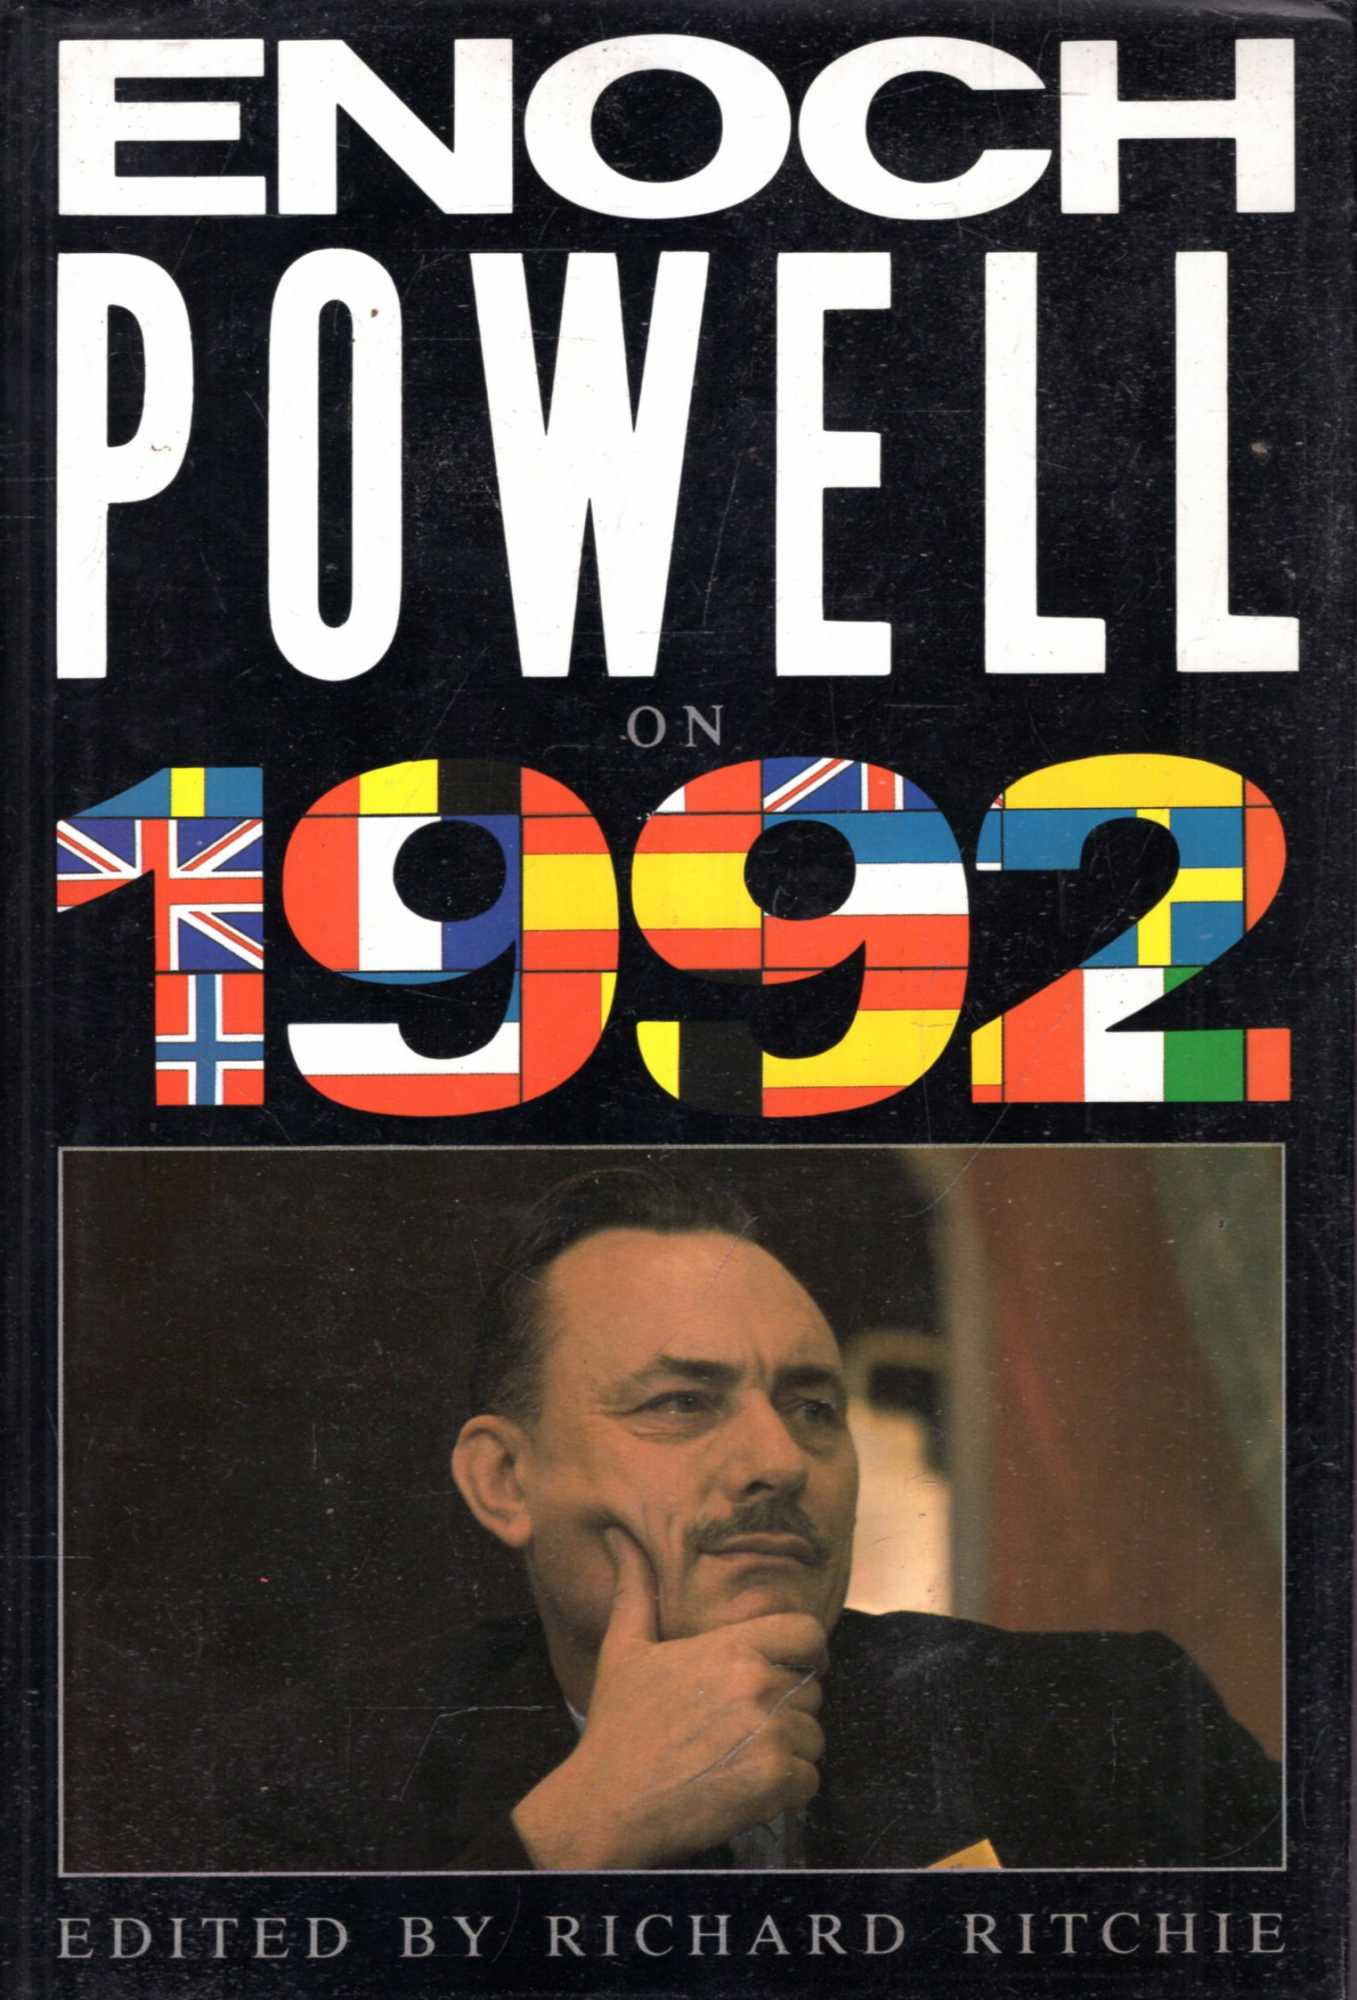 Image for Enoch Powell on 1992